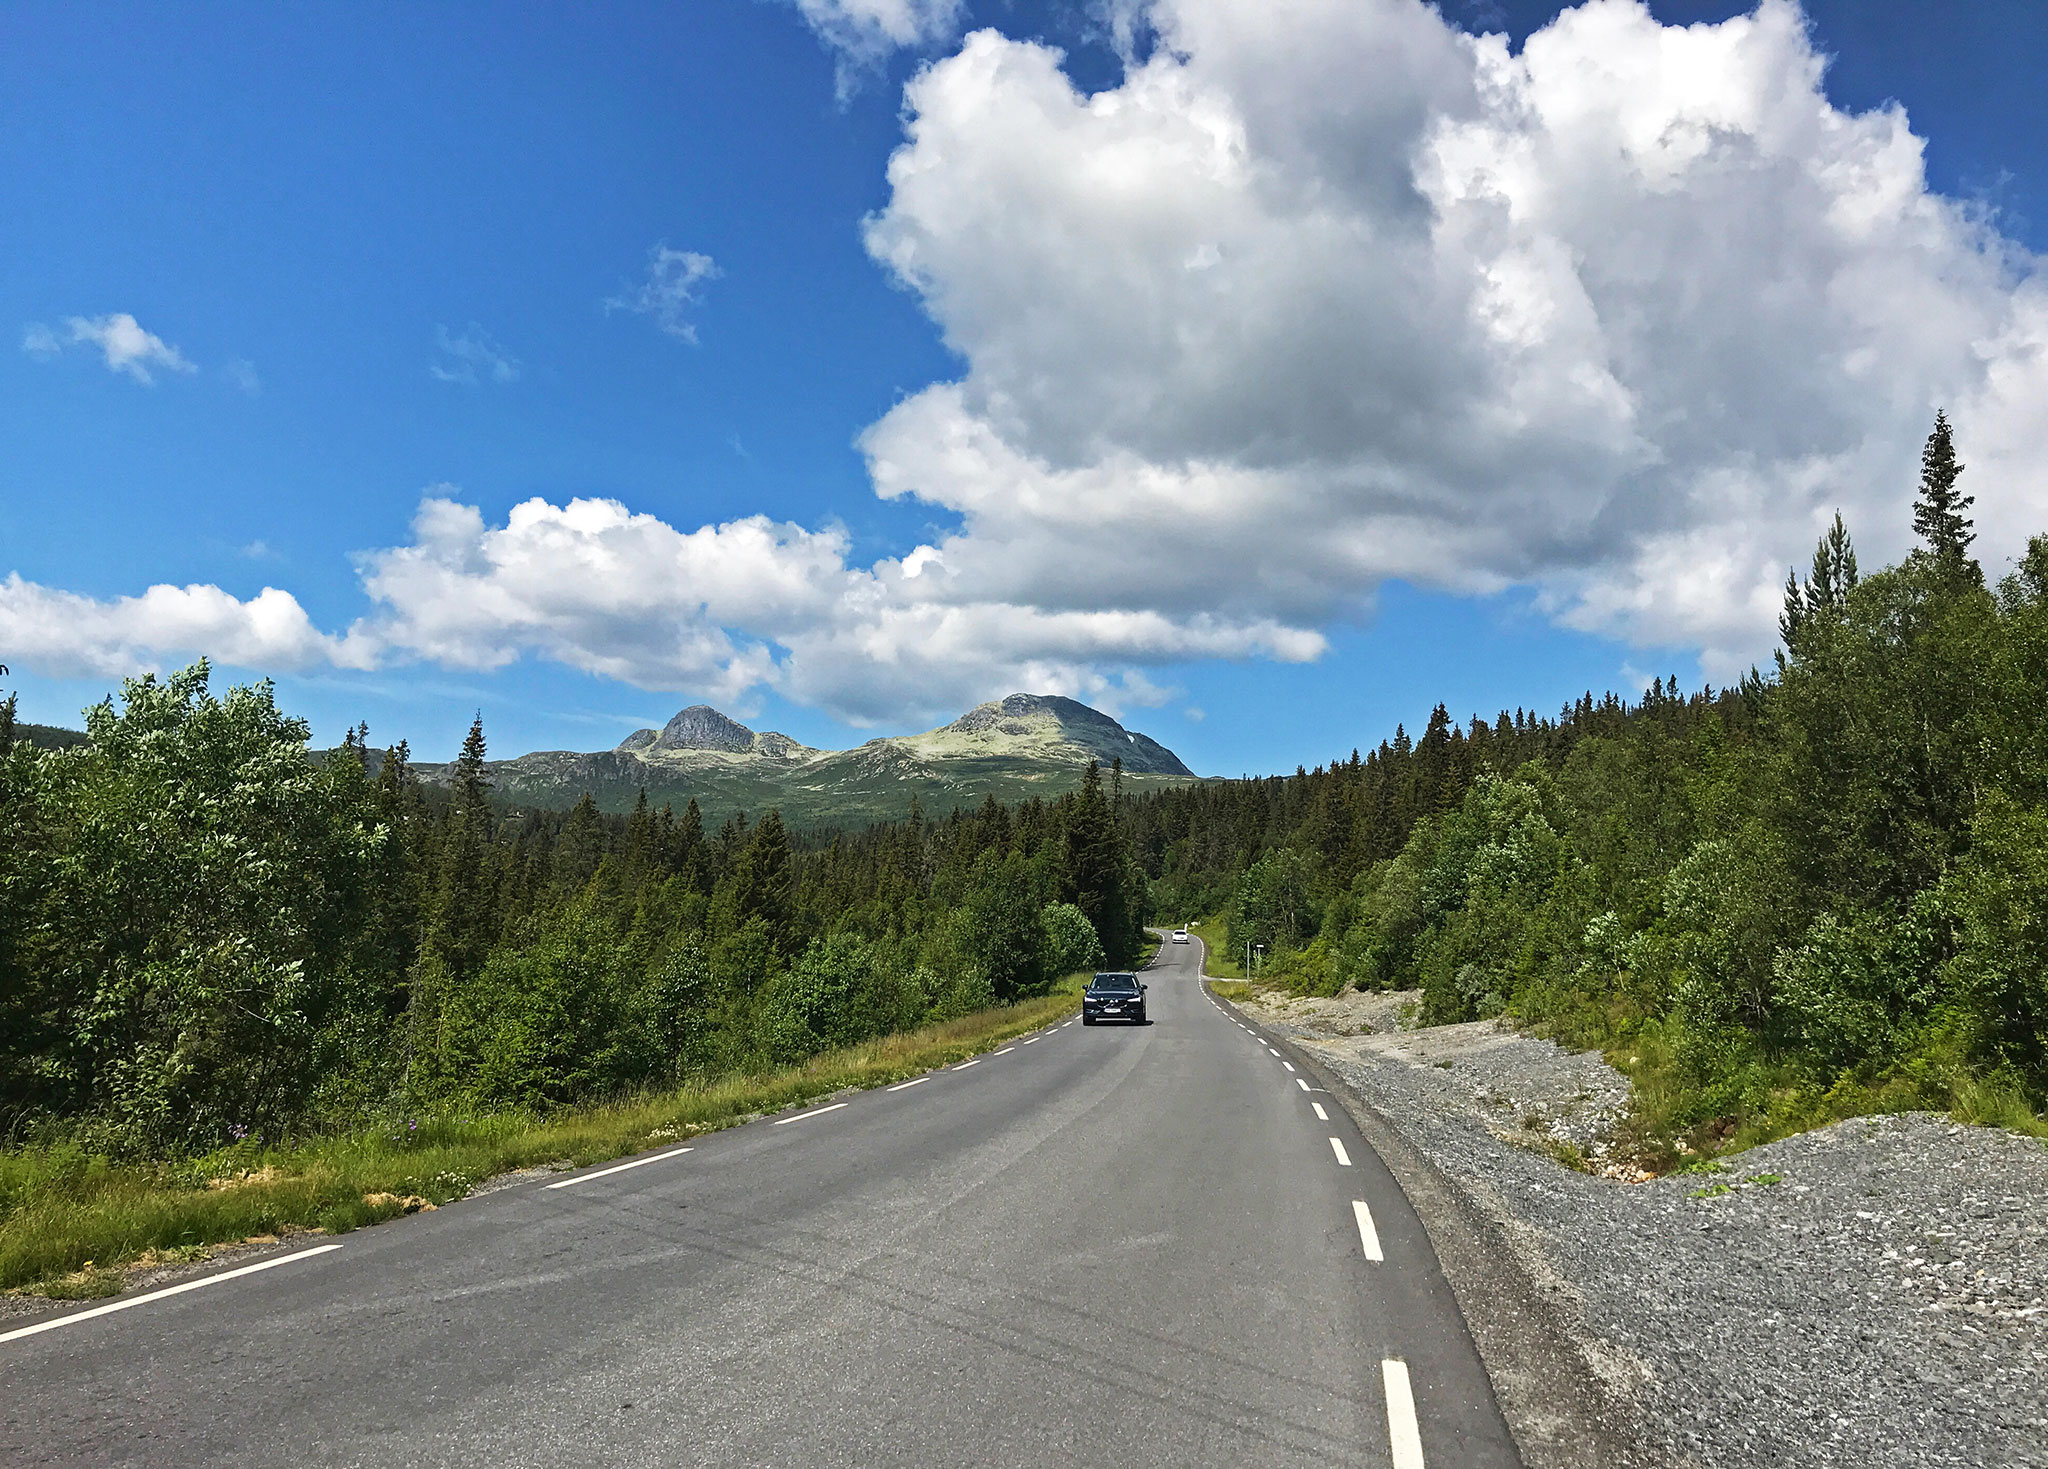 The long way home: Fv651 from Tuddal to Gaustadtoppen, and down towards Rjukan